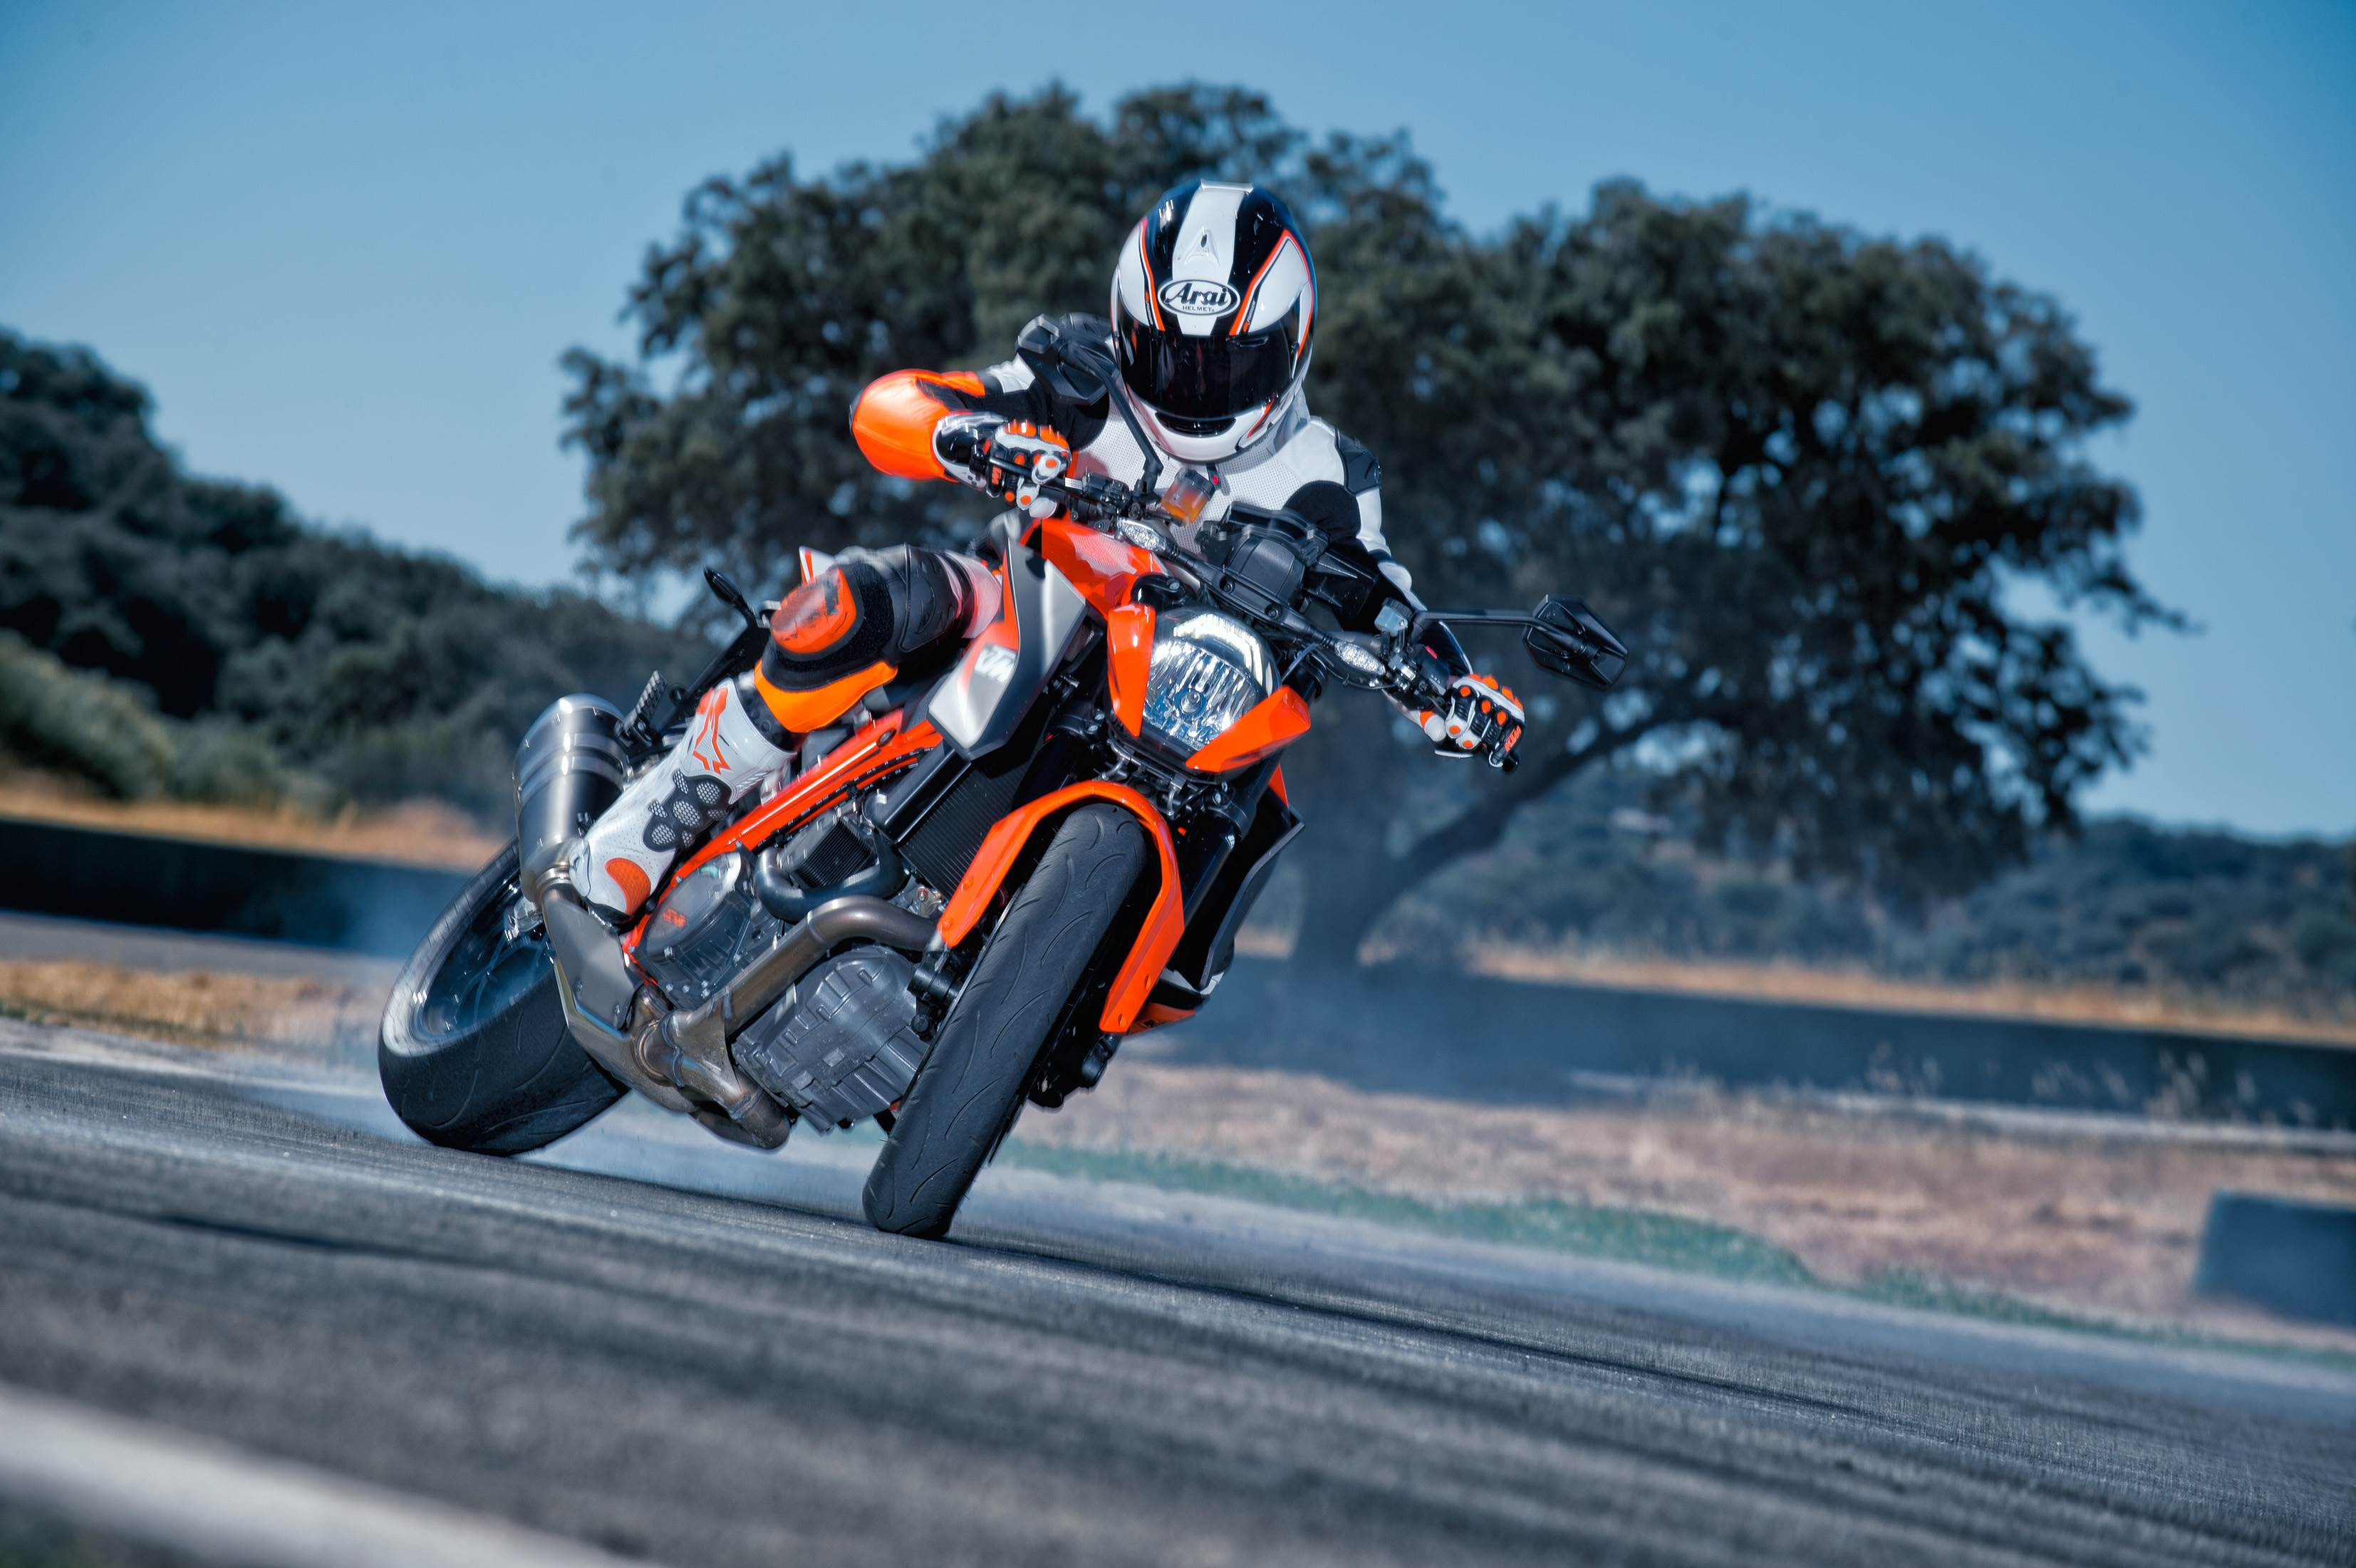 2014 KTM Super Duke 1290 wallpapers - 08